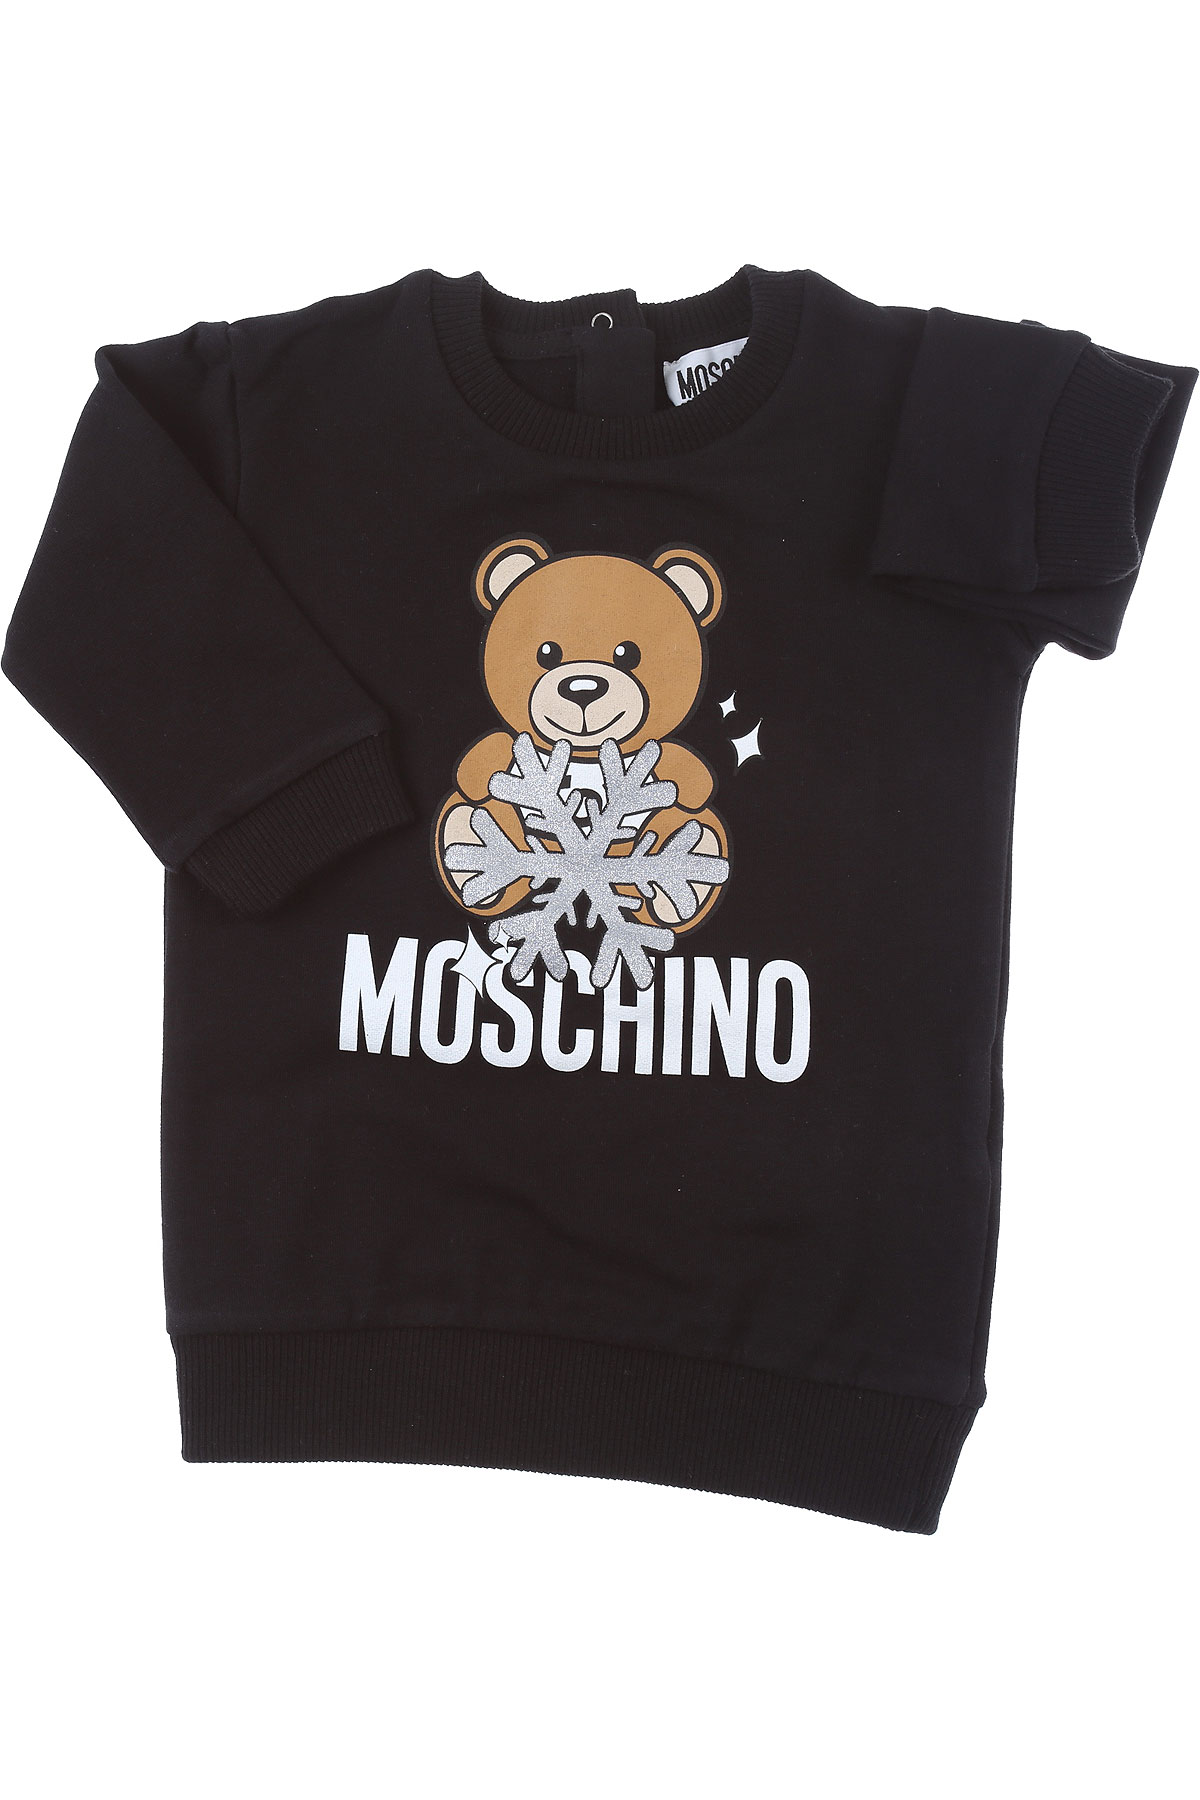 Moschino Baby Dress for Girls On Sale, Black, Cotton, 2019, 12M 18M 24M 3Y 9M